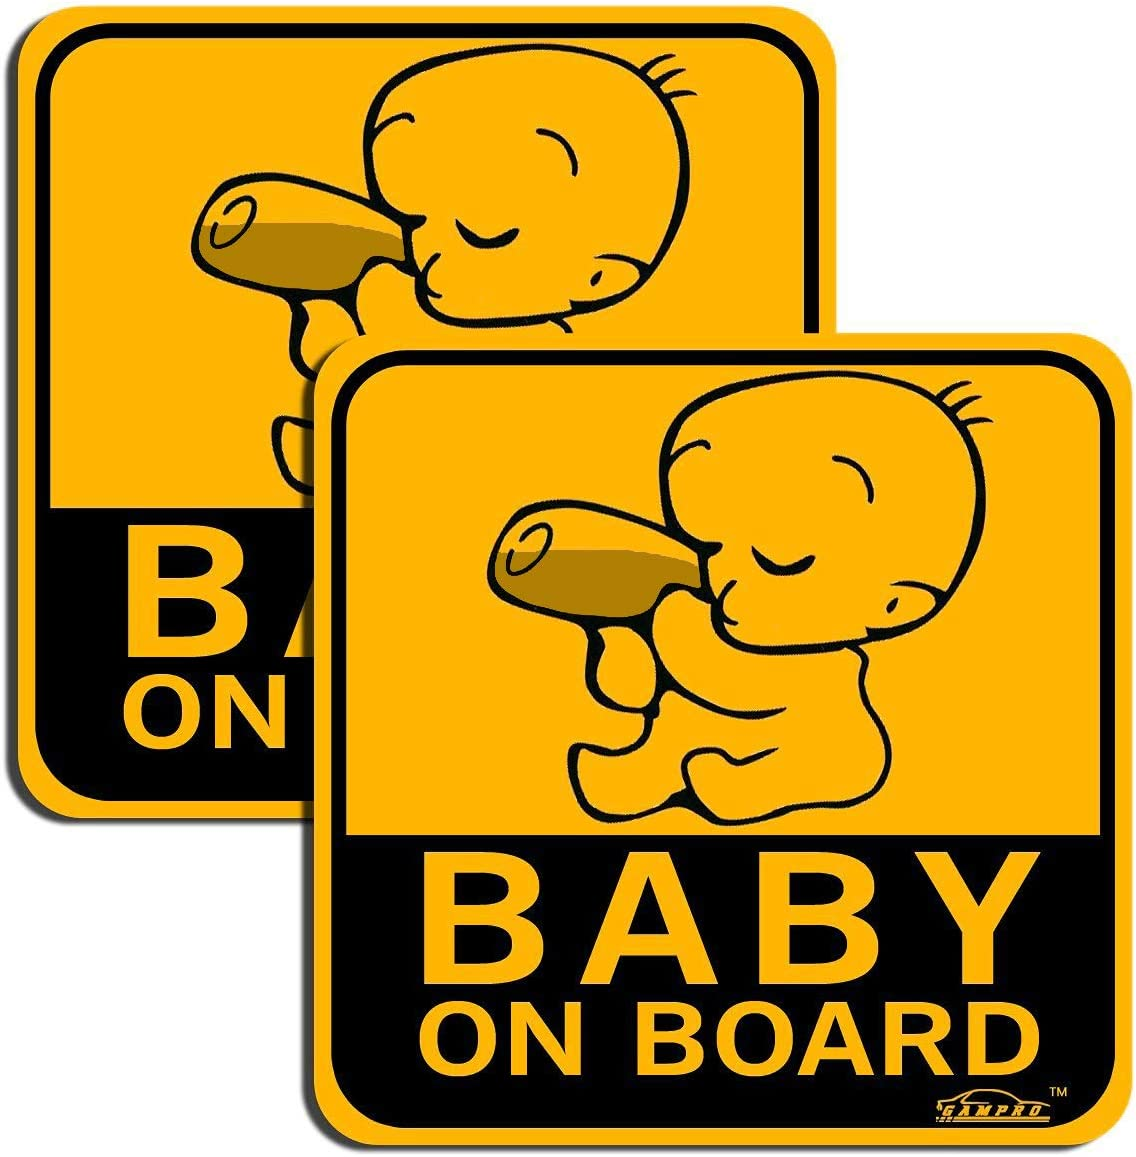 GAMPRO Lovely BABY ON BOARD Reflective Vehicle Bumper Magnet 2-Pack Reflective Vehicle Car Sign Sticker Bumper for New Parents Reduce Road Rage and Accidents for New Parent and Child /¡/